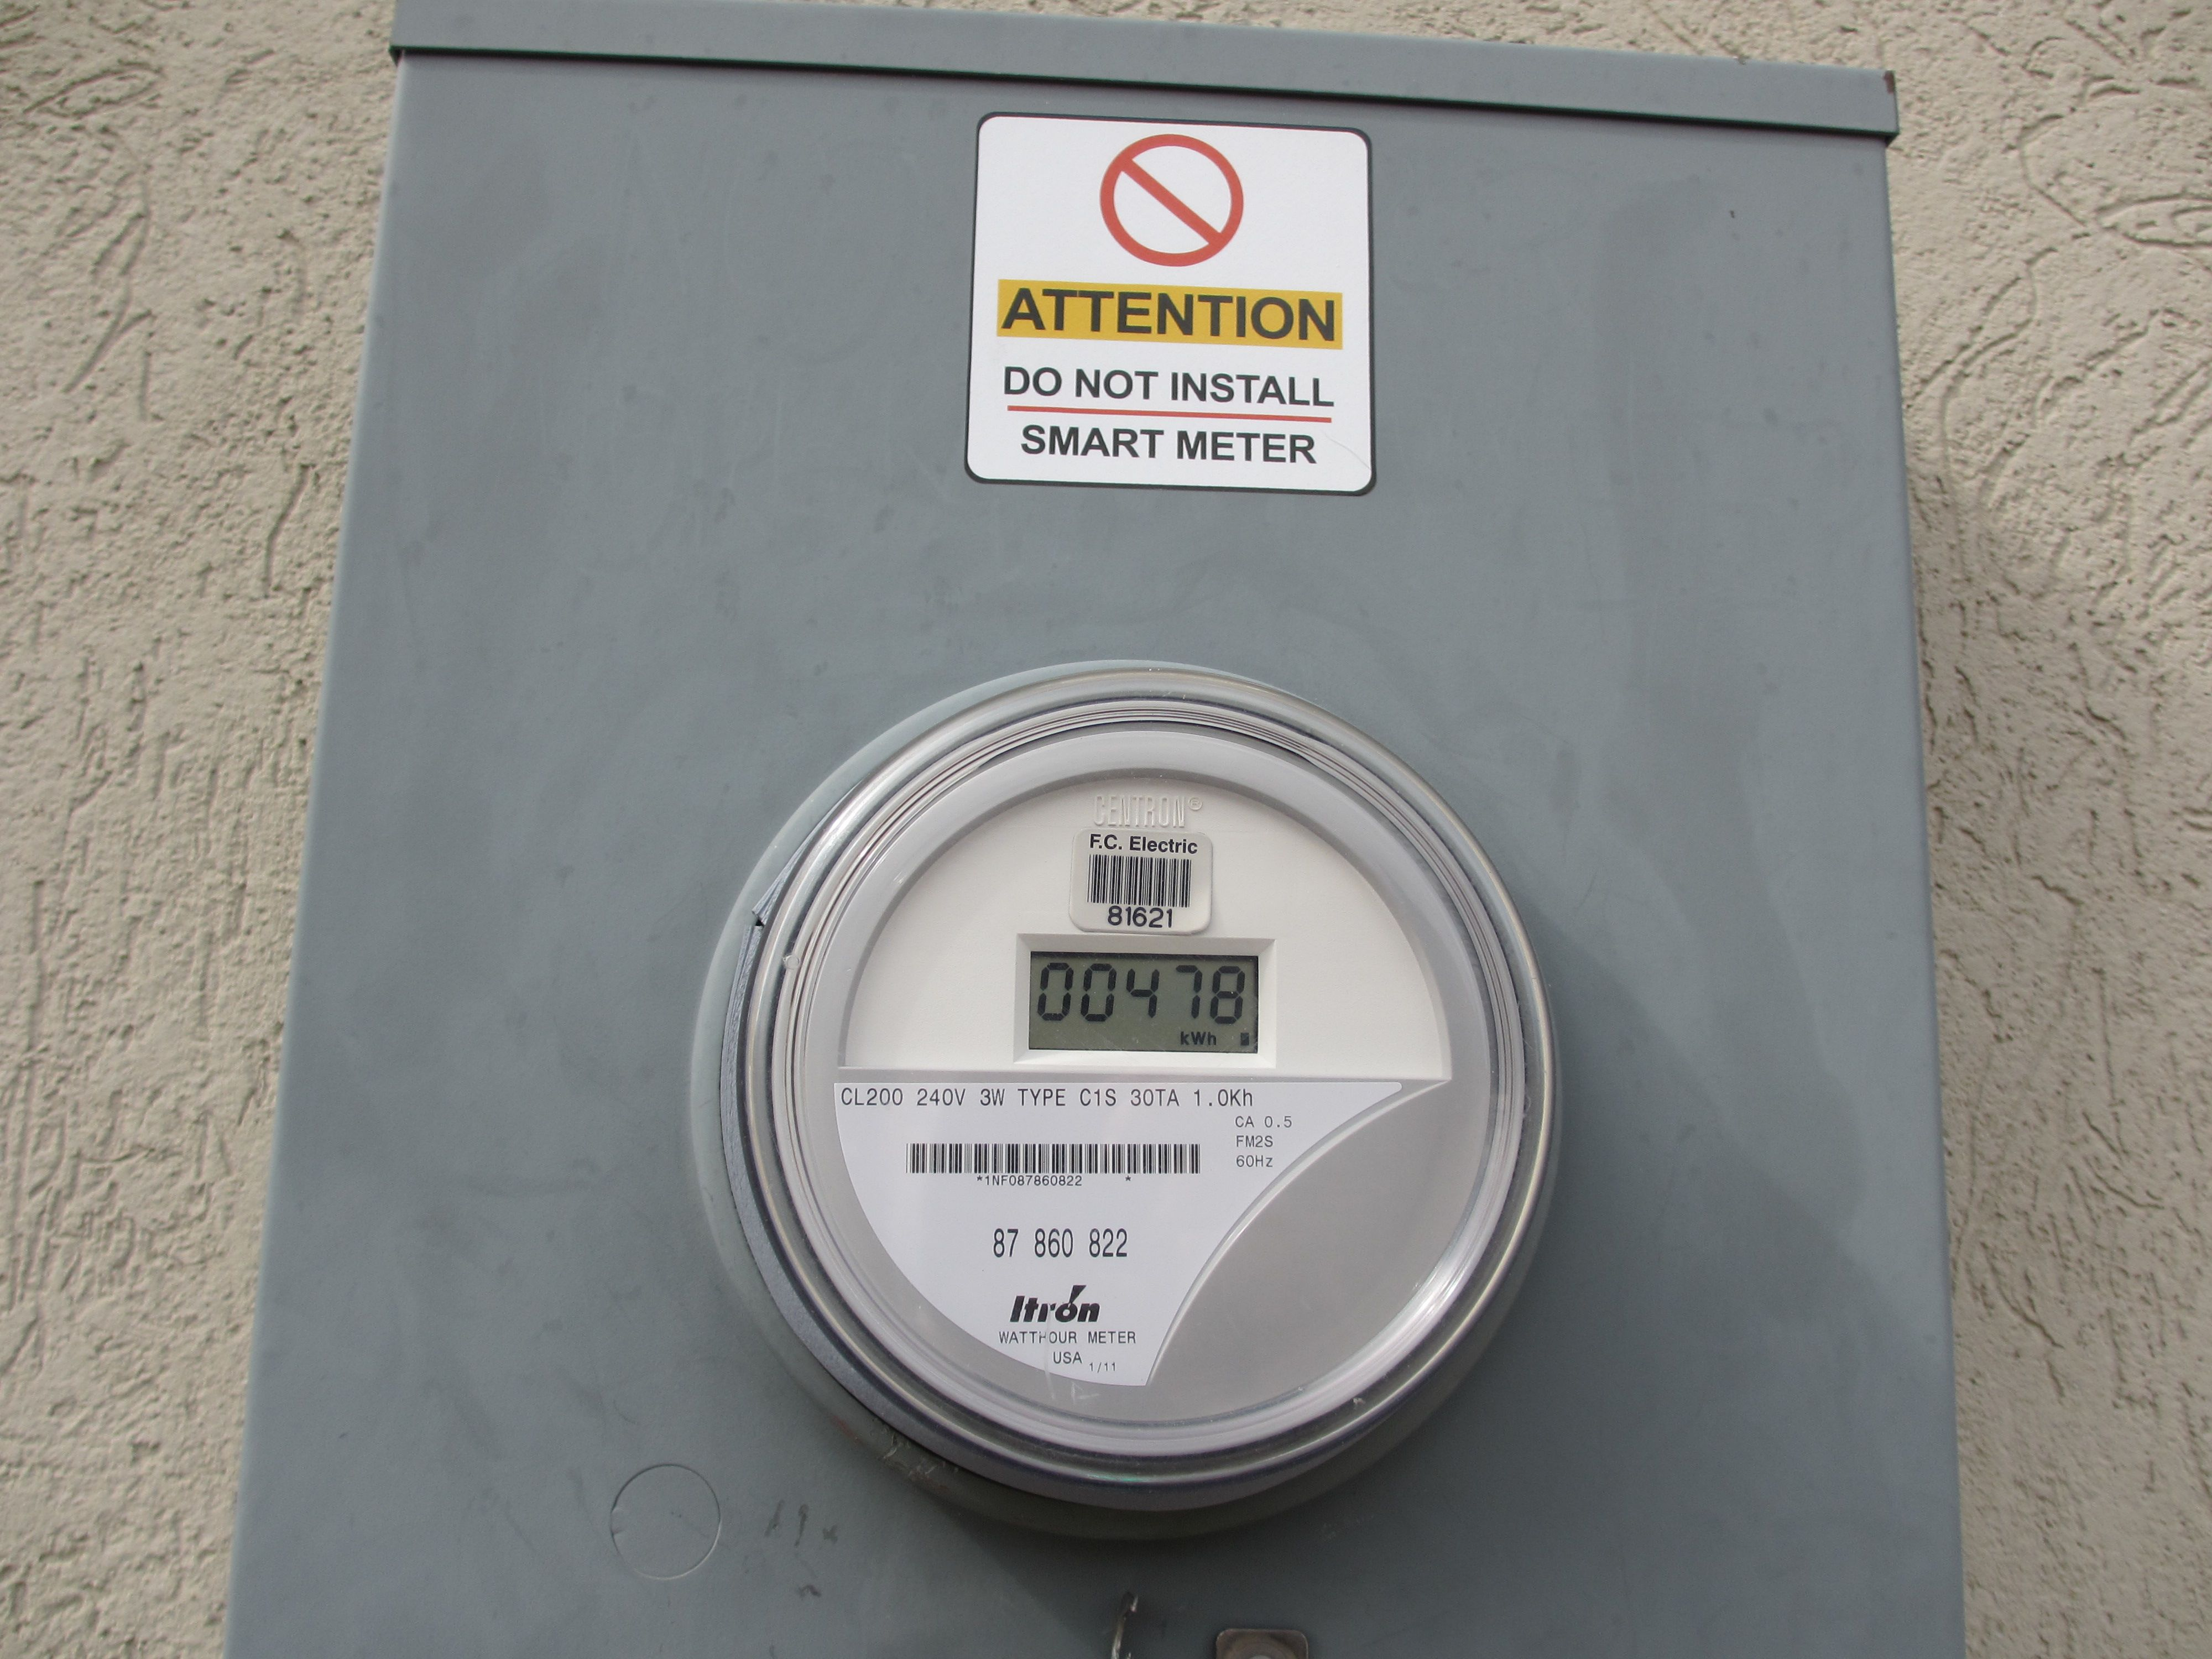 Salt in the wounds: the smart meter the city forced on the Farvers